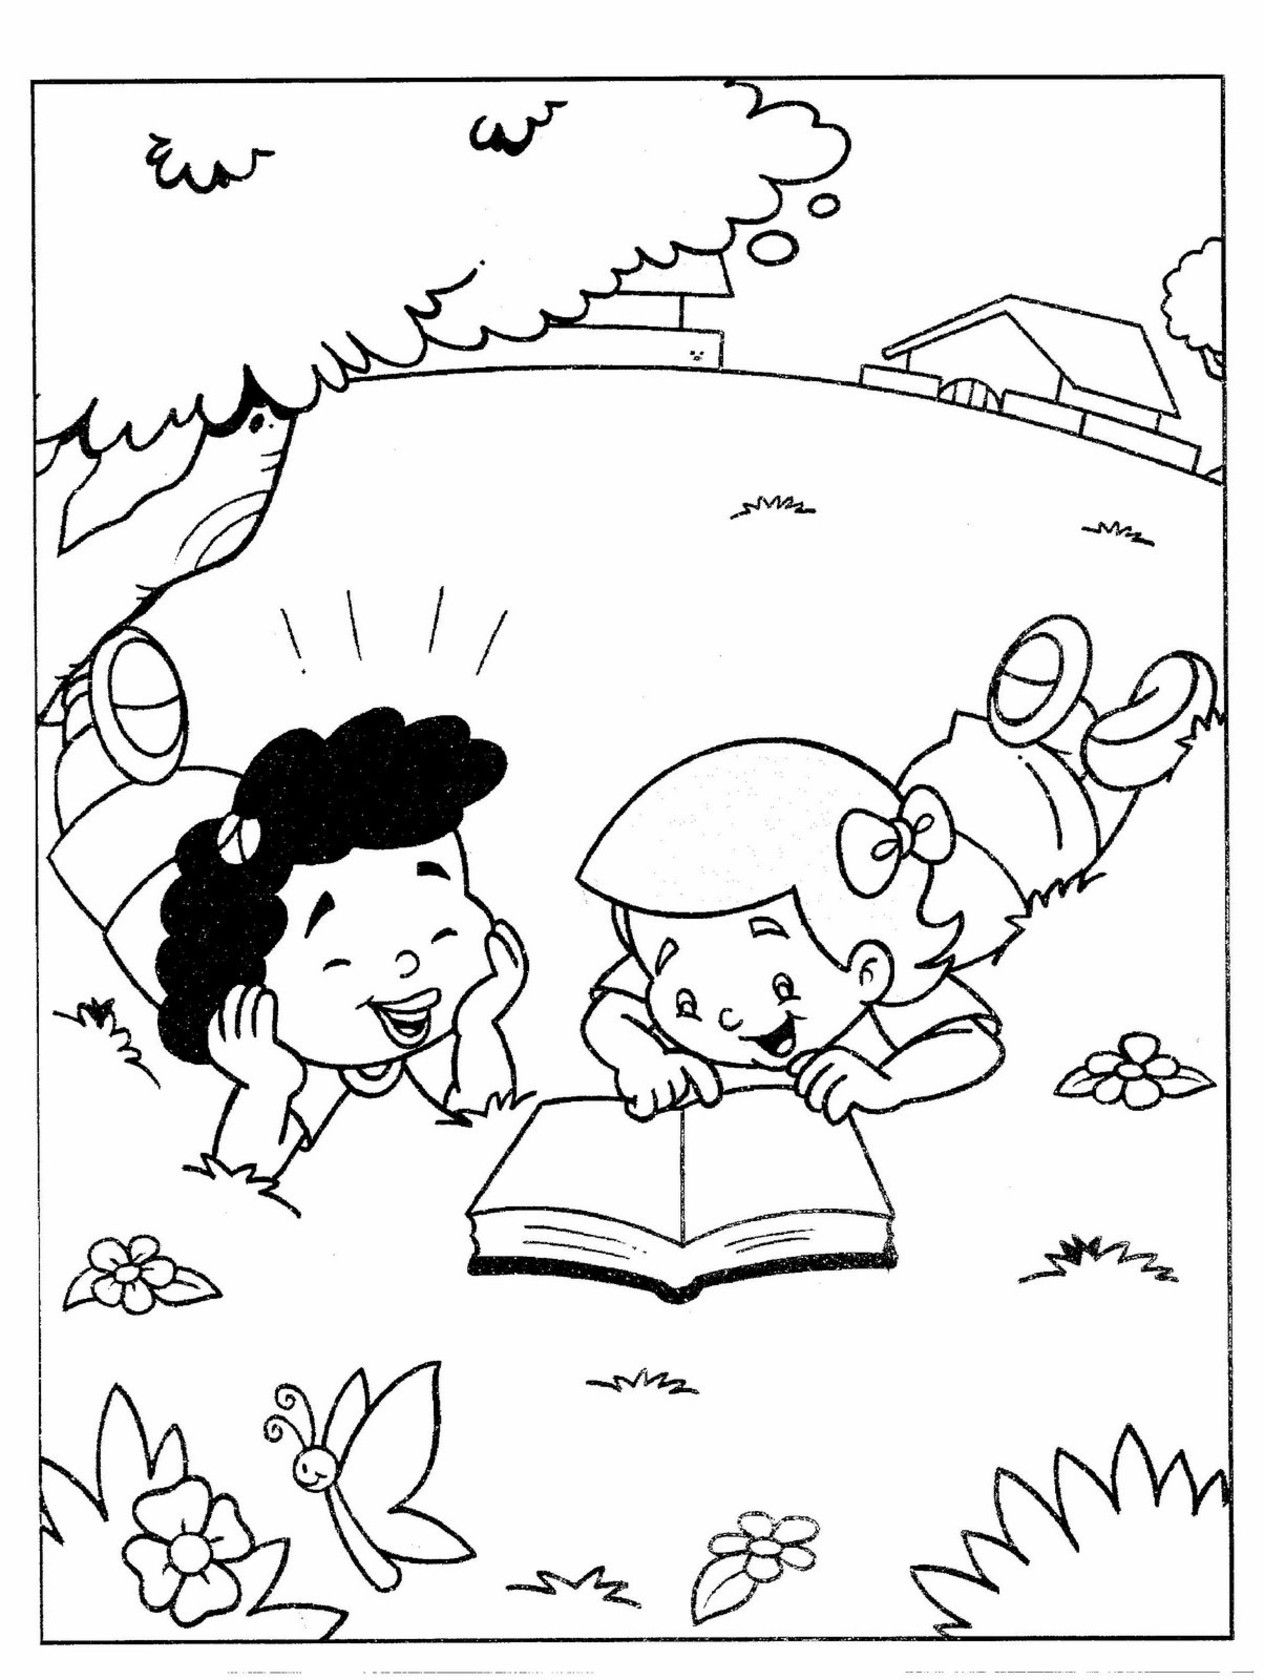 Free coloring pages for reading - Colouring Pages Reading Free Nature Coloring Pages 2 Children Reading Book In The Garden